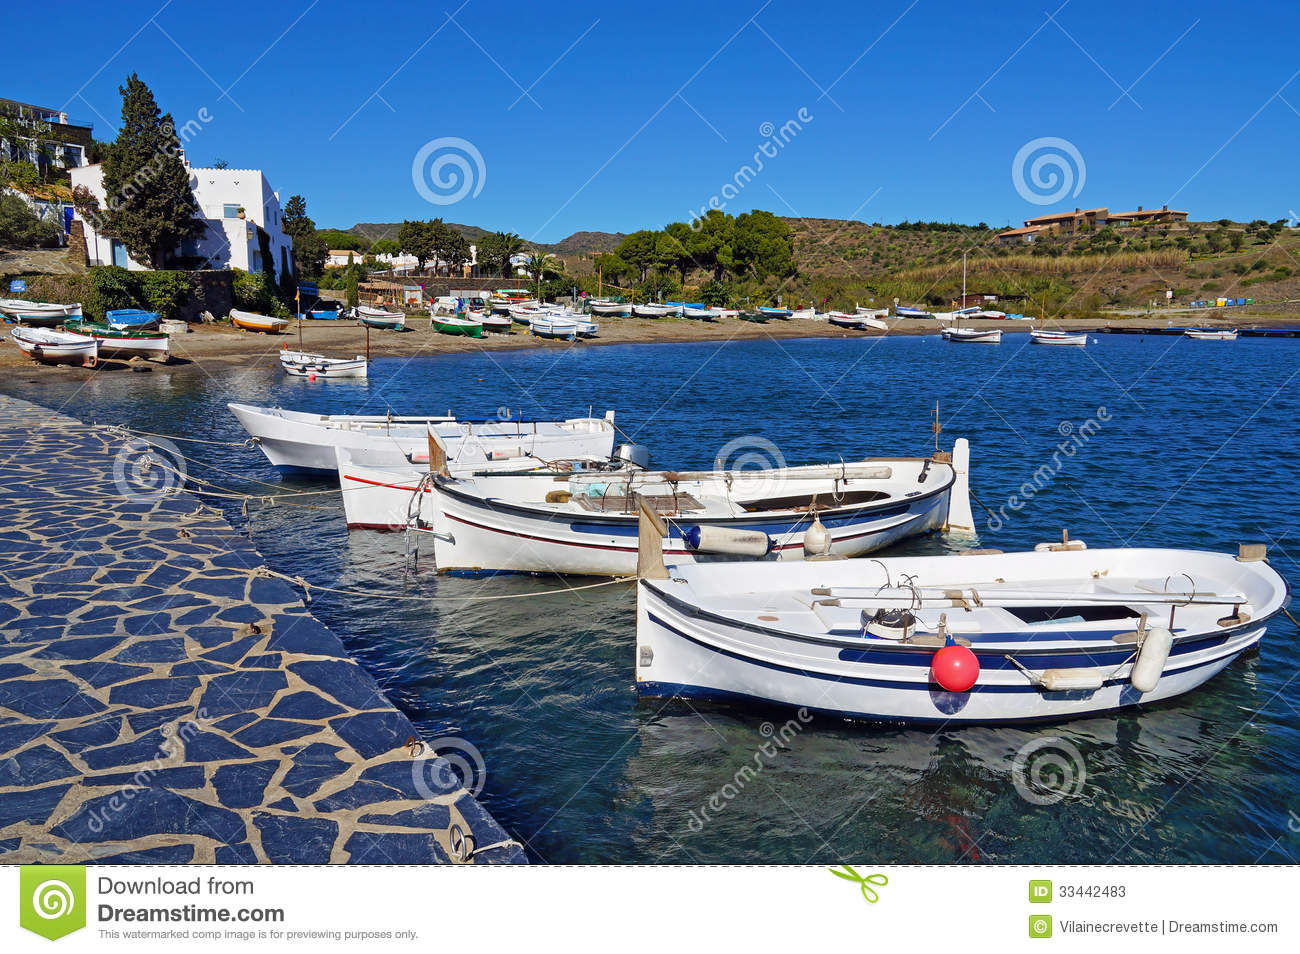 Traditional Mediterranean Fishing Boats Stock Photos - Image: 33442483